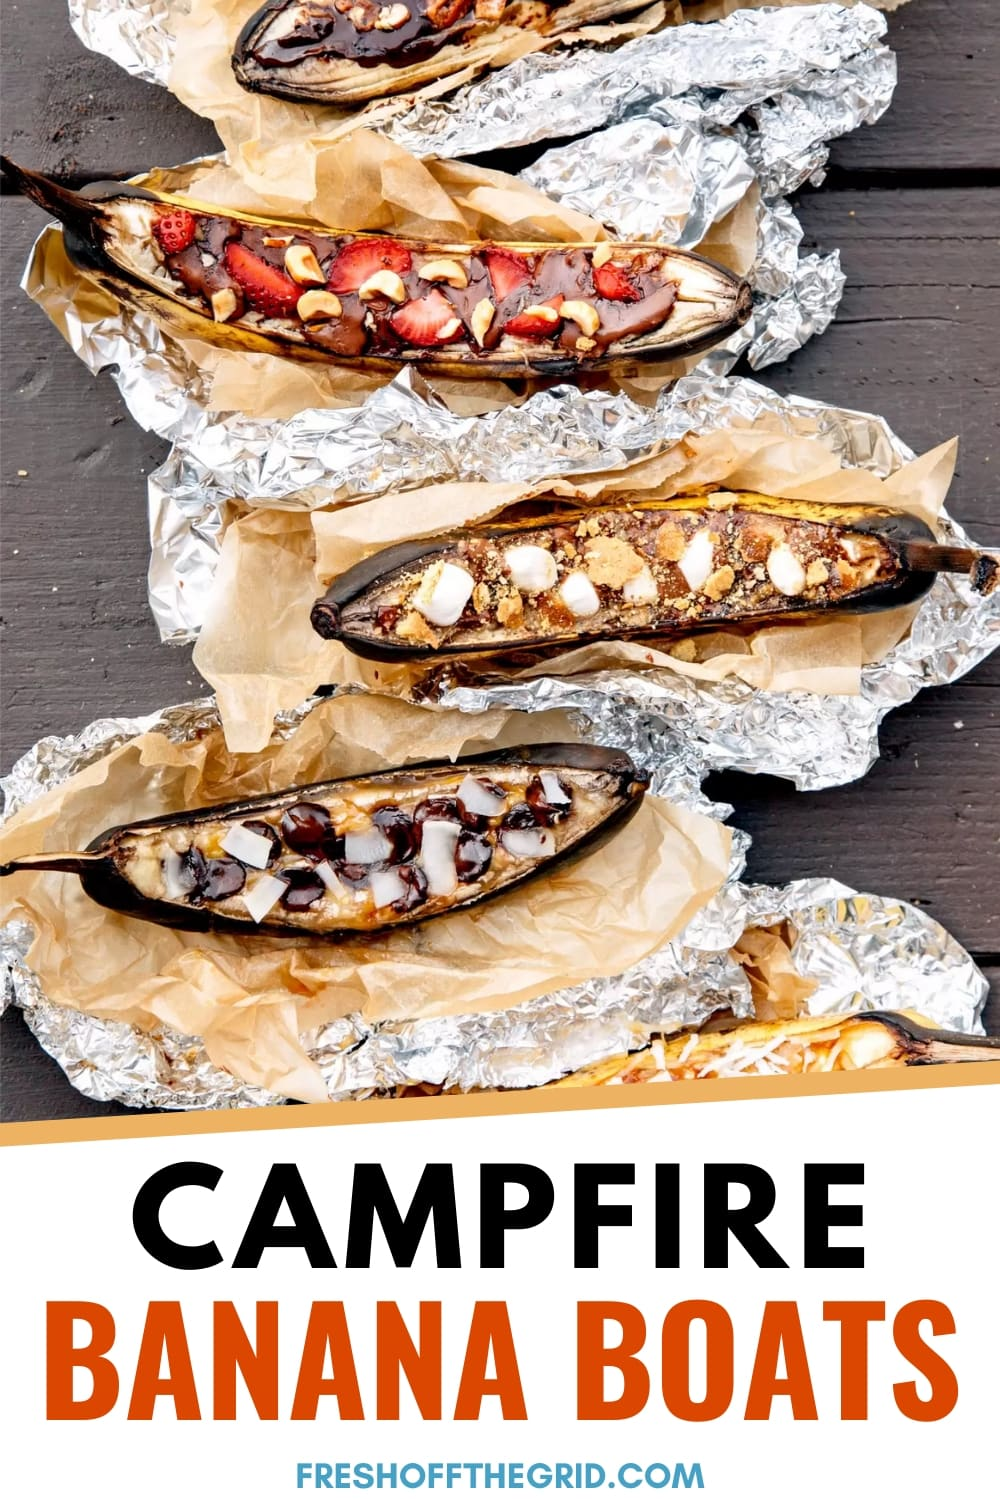 Banana Boats are a classic campfire dessert and camping tradition! Learn how to make grilled banana boats with 9 different fun and creative topping combinations! via @freshoffthegrid